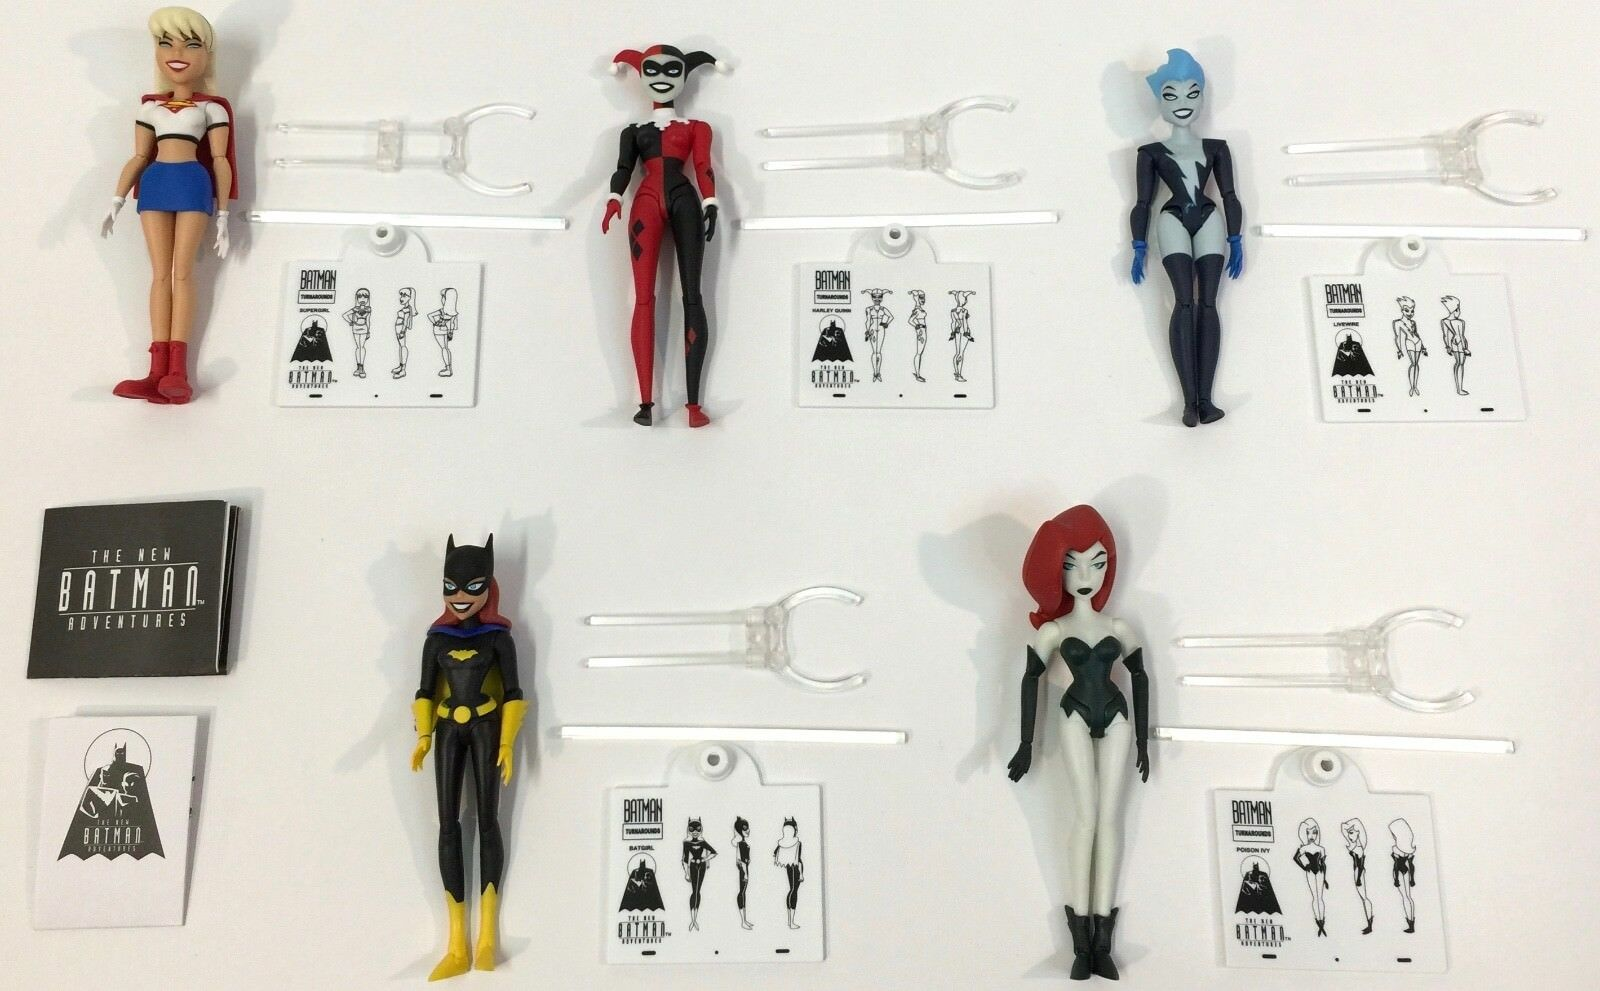 BATMAN Animated Series GIRLS NIGHT OUT Figure Gift Set HARLEY Quinn Batgirl